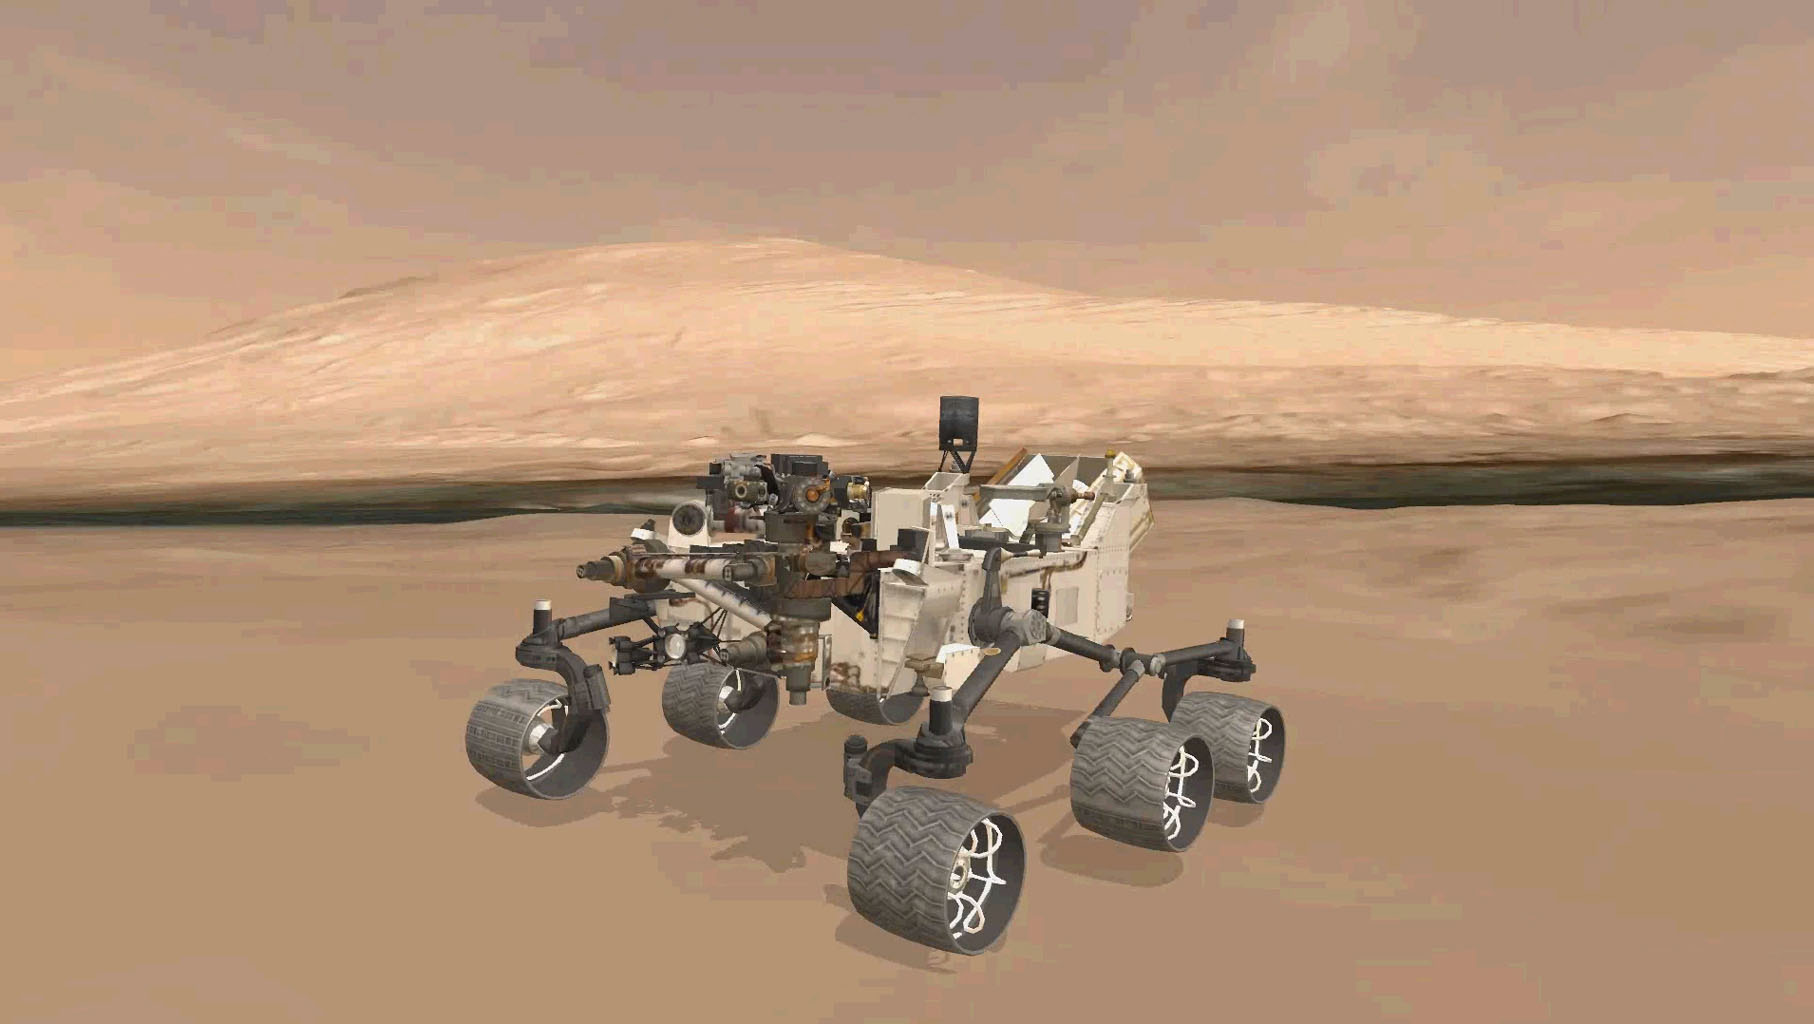 This image shows the approximate true position of NASA's Curiosity rover on Mars. A 3-D virtual model of Curiosity is shown inside Gale Crater, near Mount Sharp, Curiosity's ultimate destination.